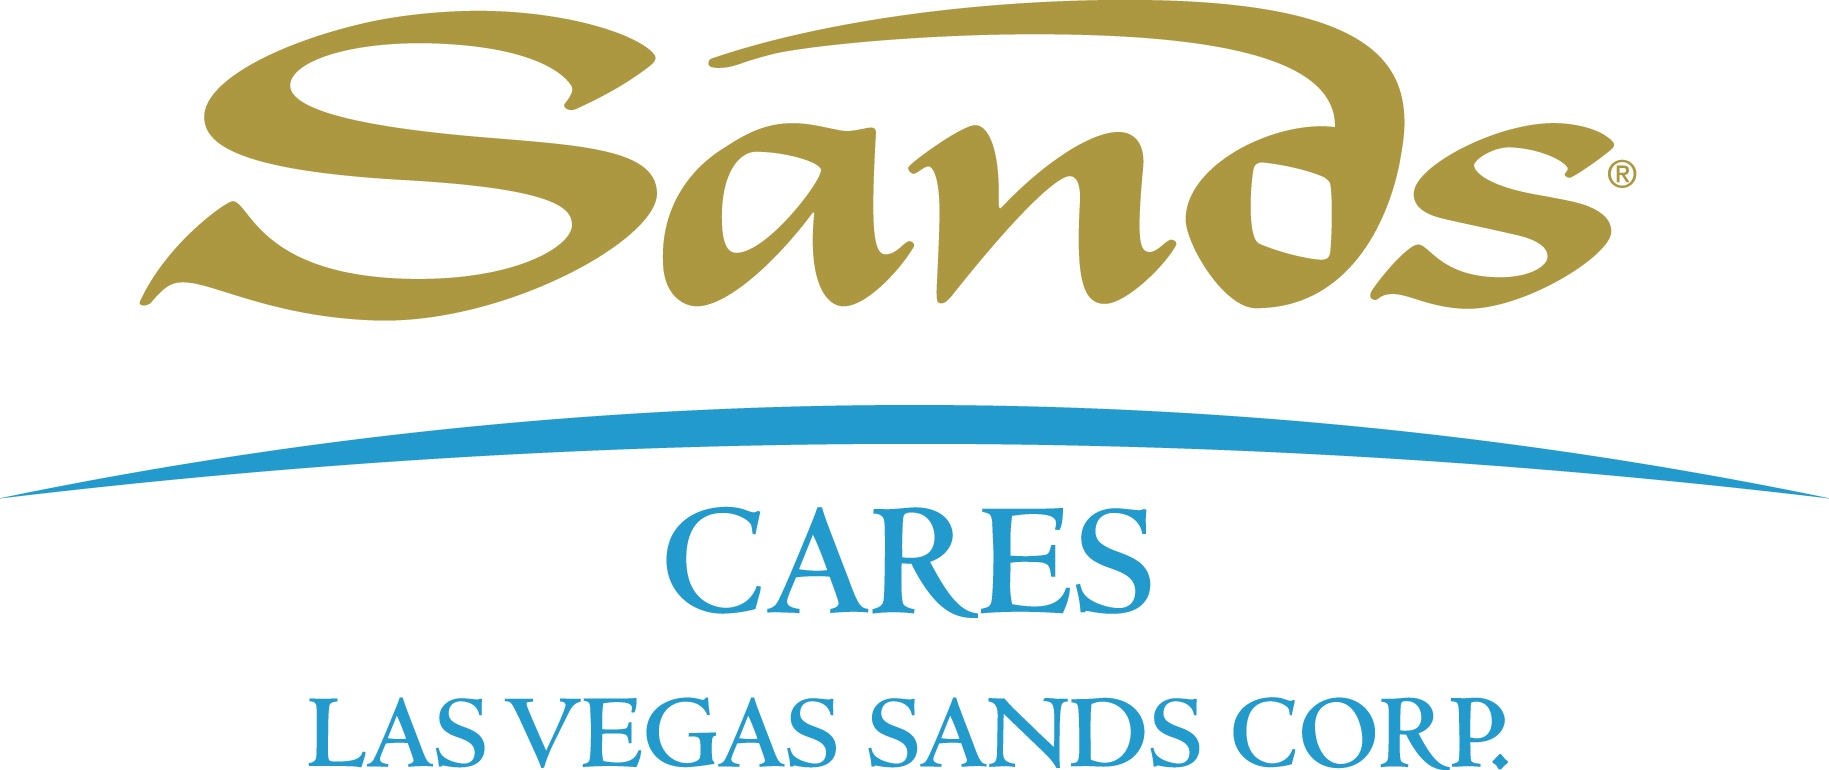 Nevada Homeless Alliance & Sand Cares Give What Clients 'Exactly' Need In Order To Adress Homelessness